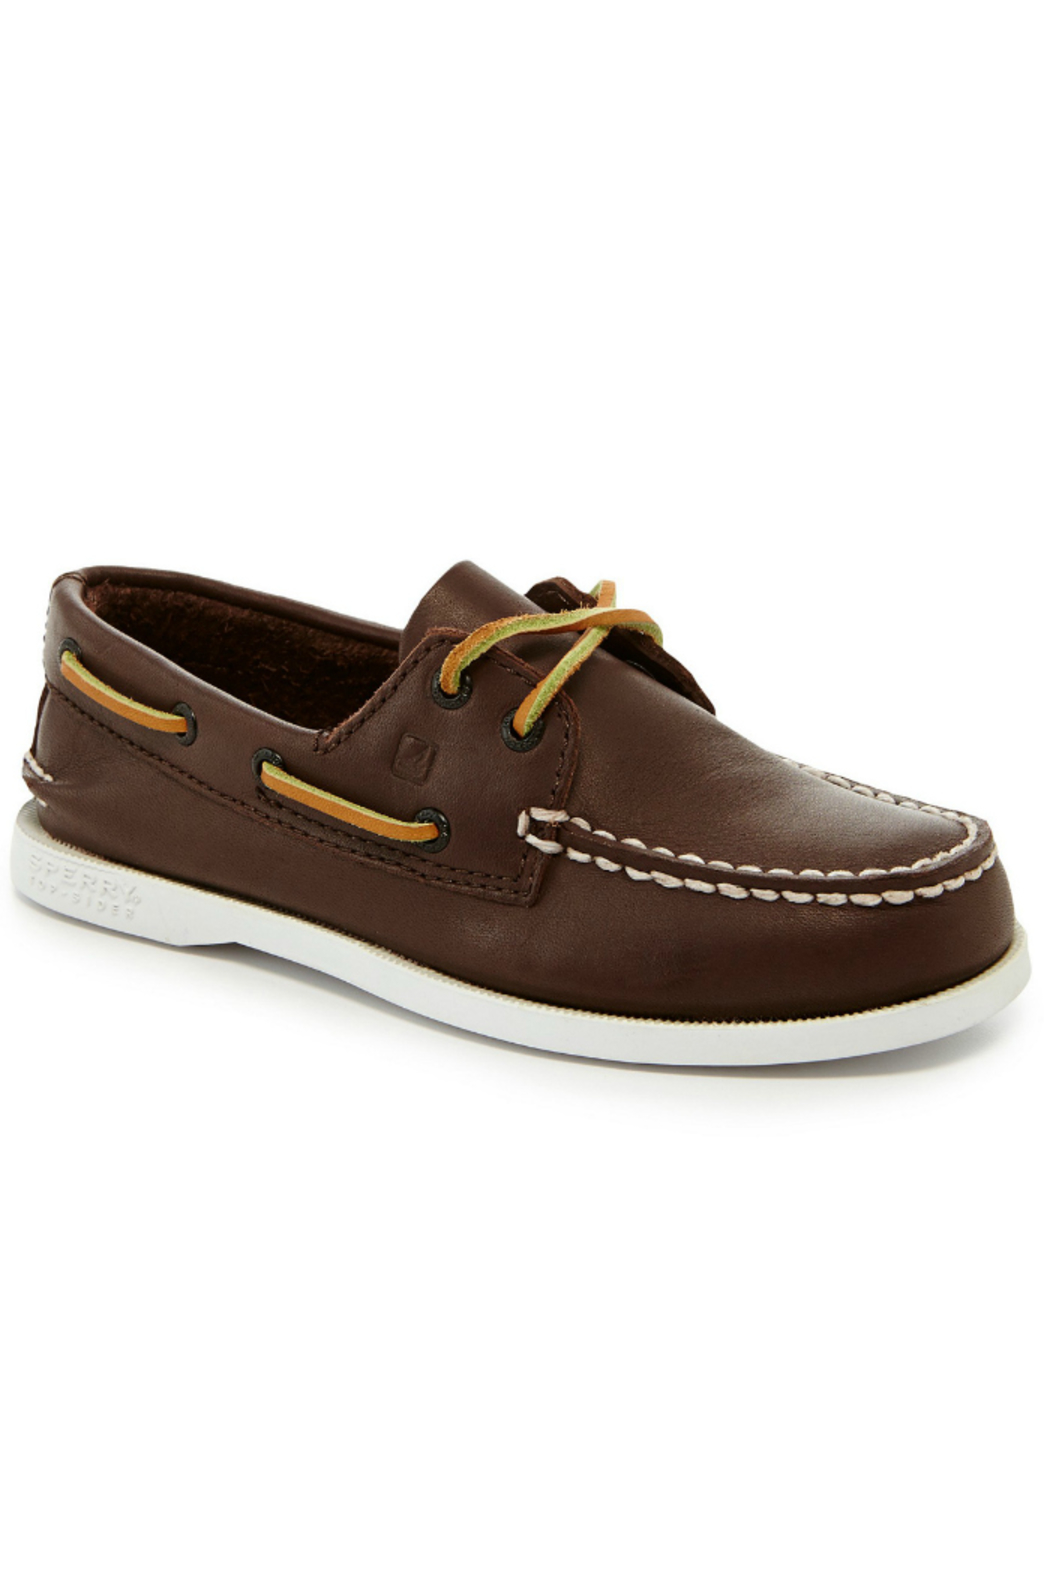 Sperry Kid's Authentic Original Boat Shoe - Front Cropped Image